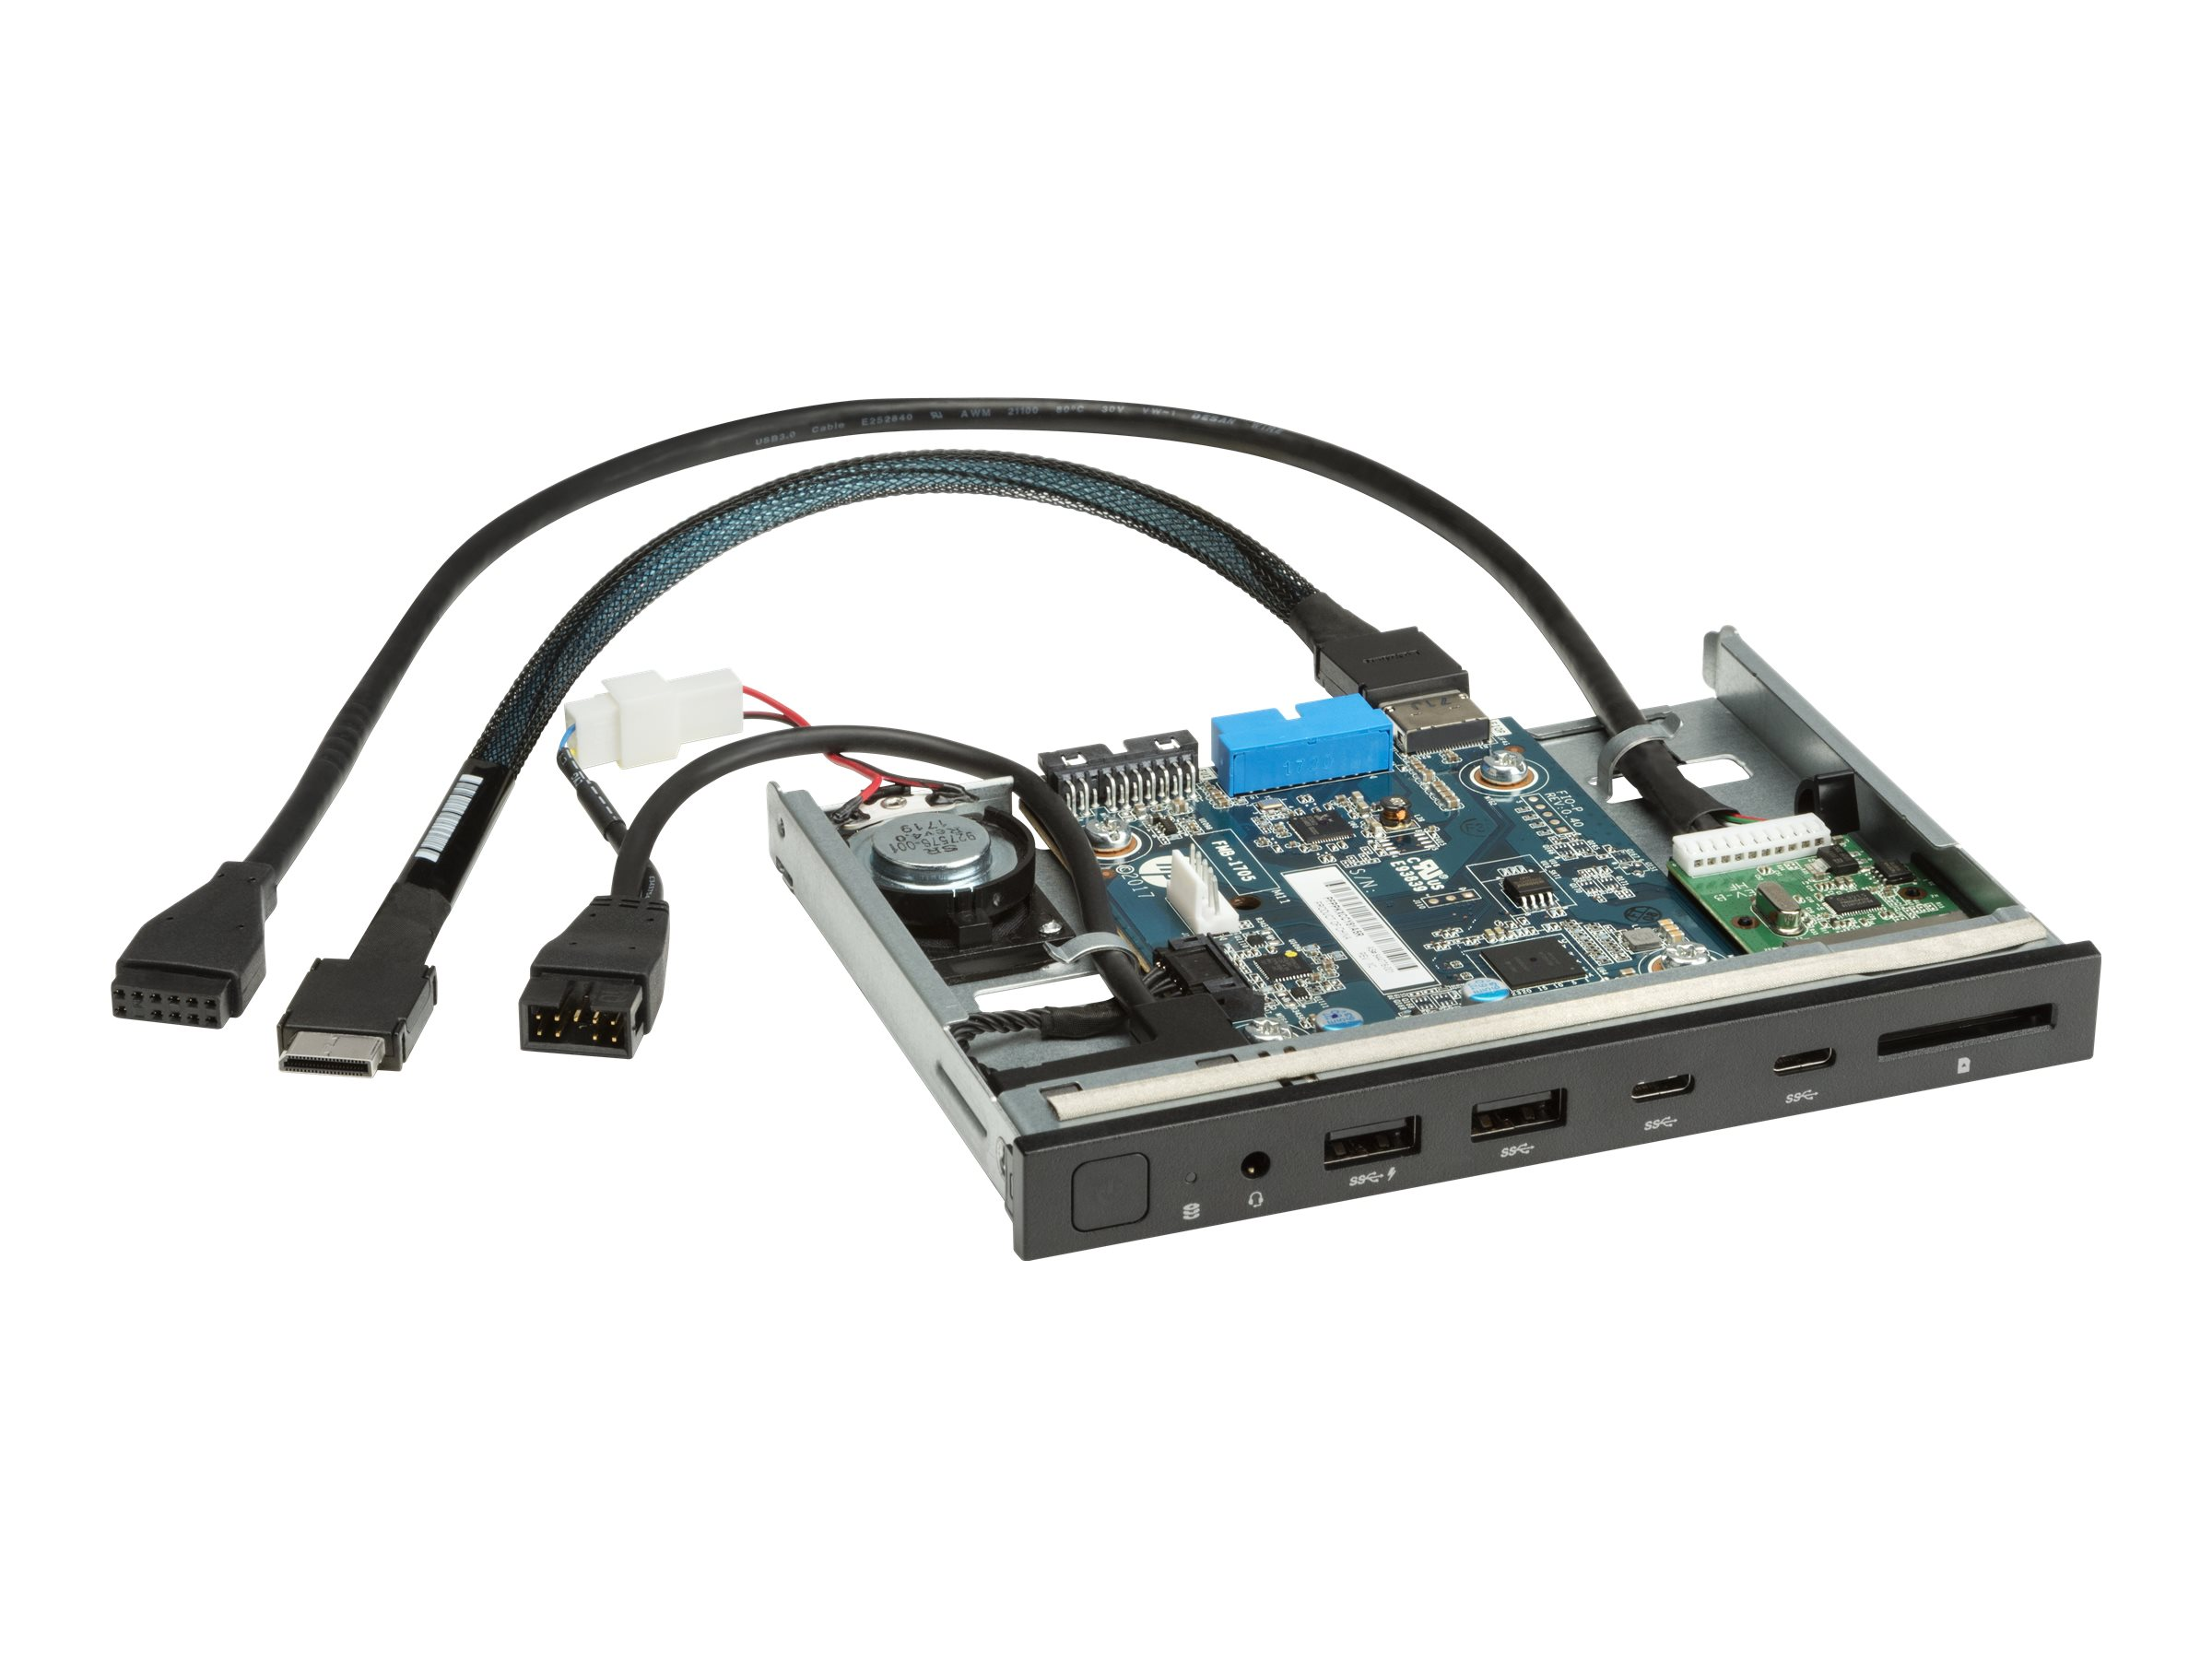 HP Premium Front I/O system input/output panel